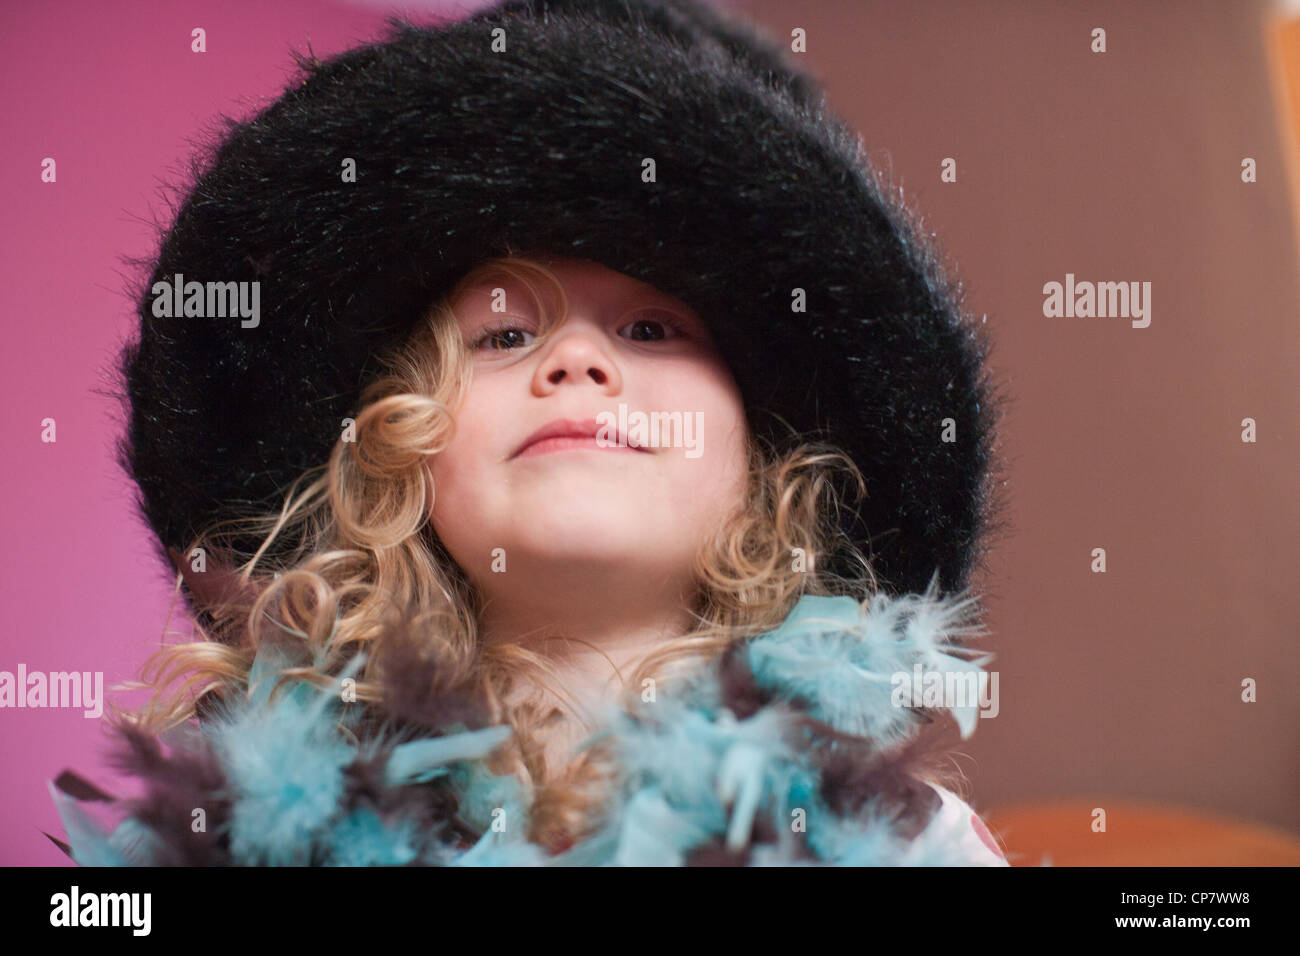 Four year old girl tries on fancy costume hat and feather boa. - Stock Image